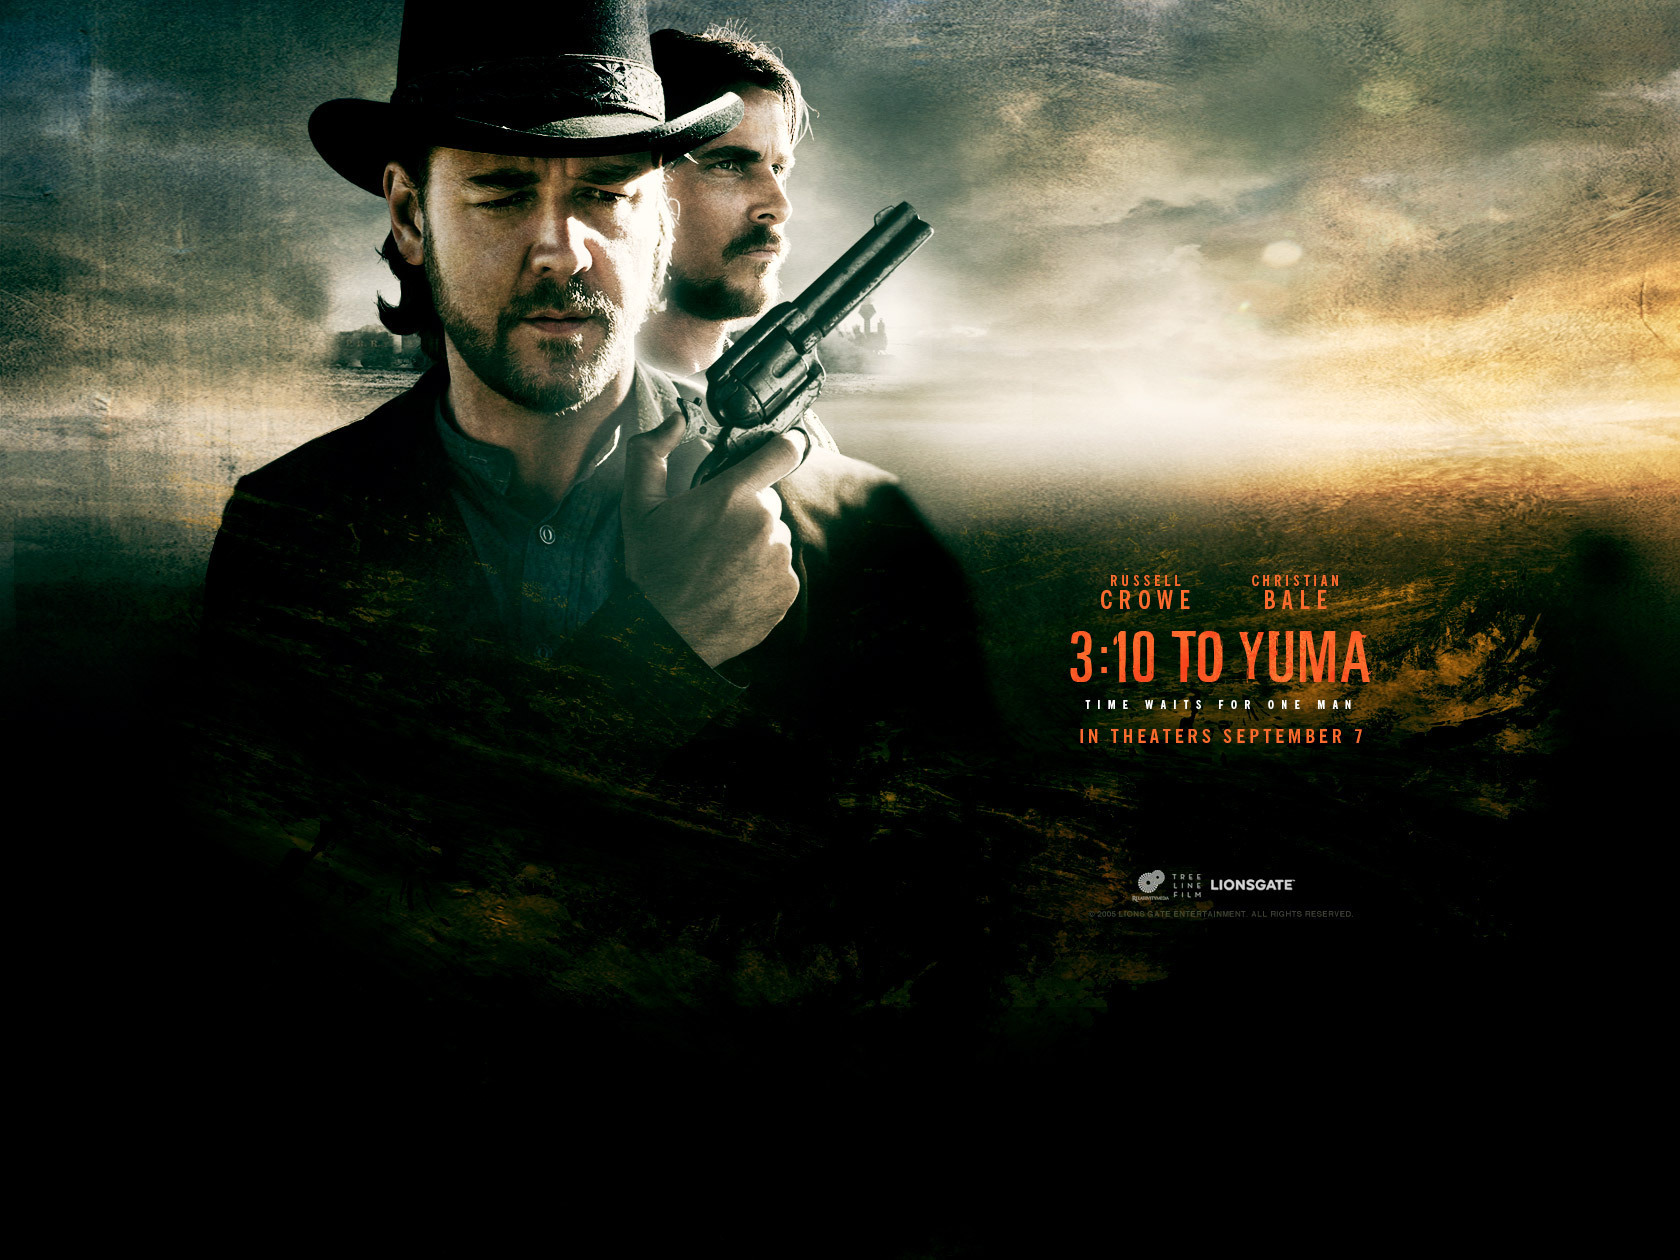 You can download free the movies Western 310 To Yuma wallpaper hd  Free download High Quality and Widescreen Resolutions Desktop Background Images